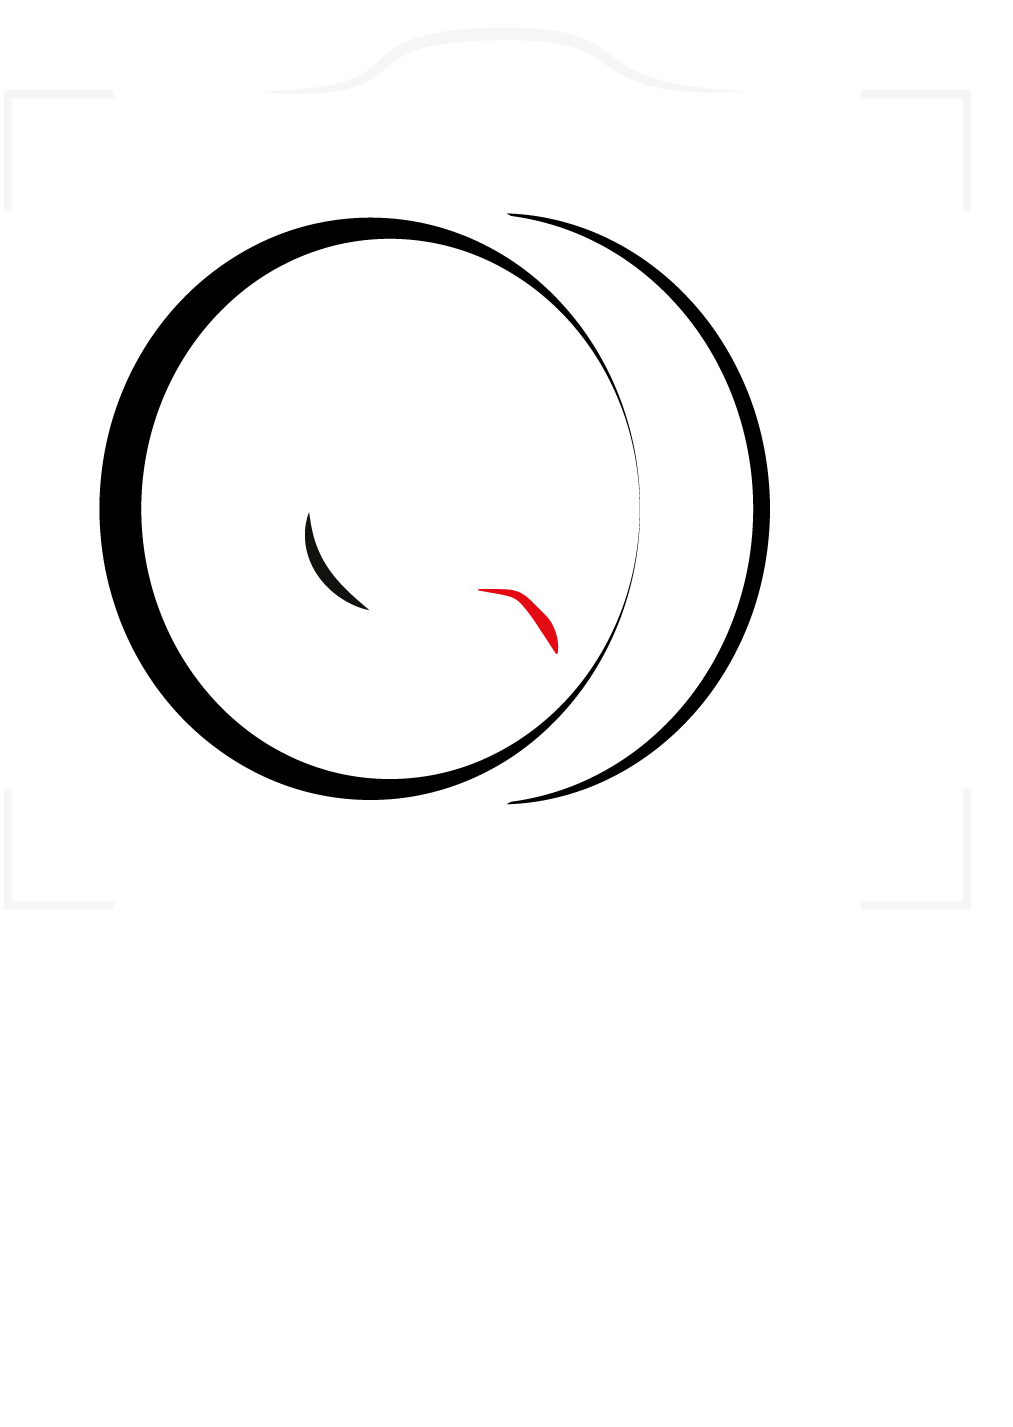 Wag & Snap_logo_blue removed_7_removed blue layer.png